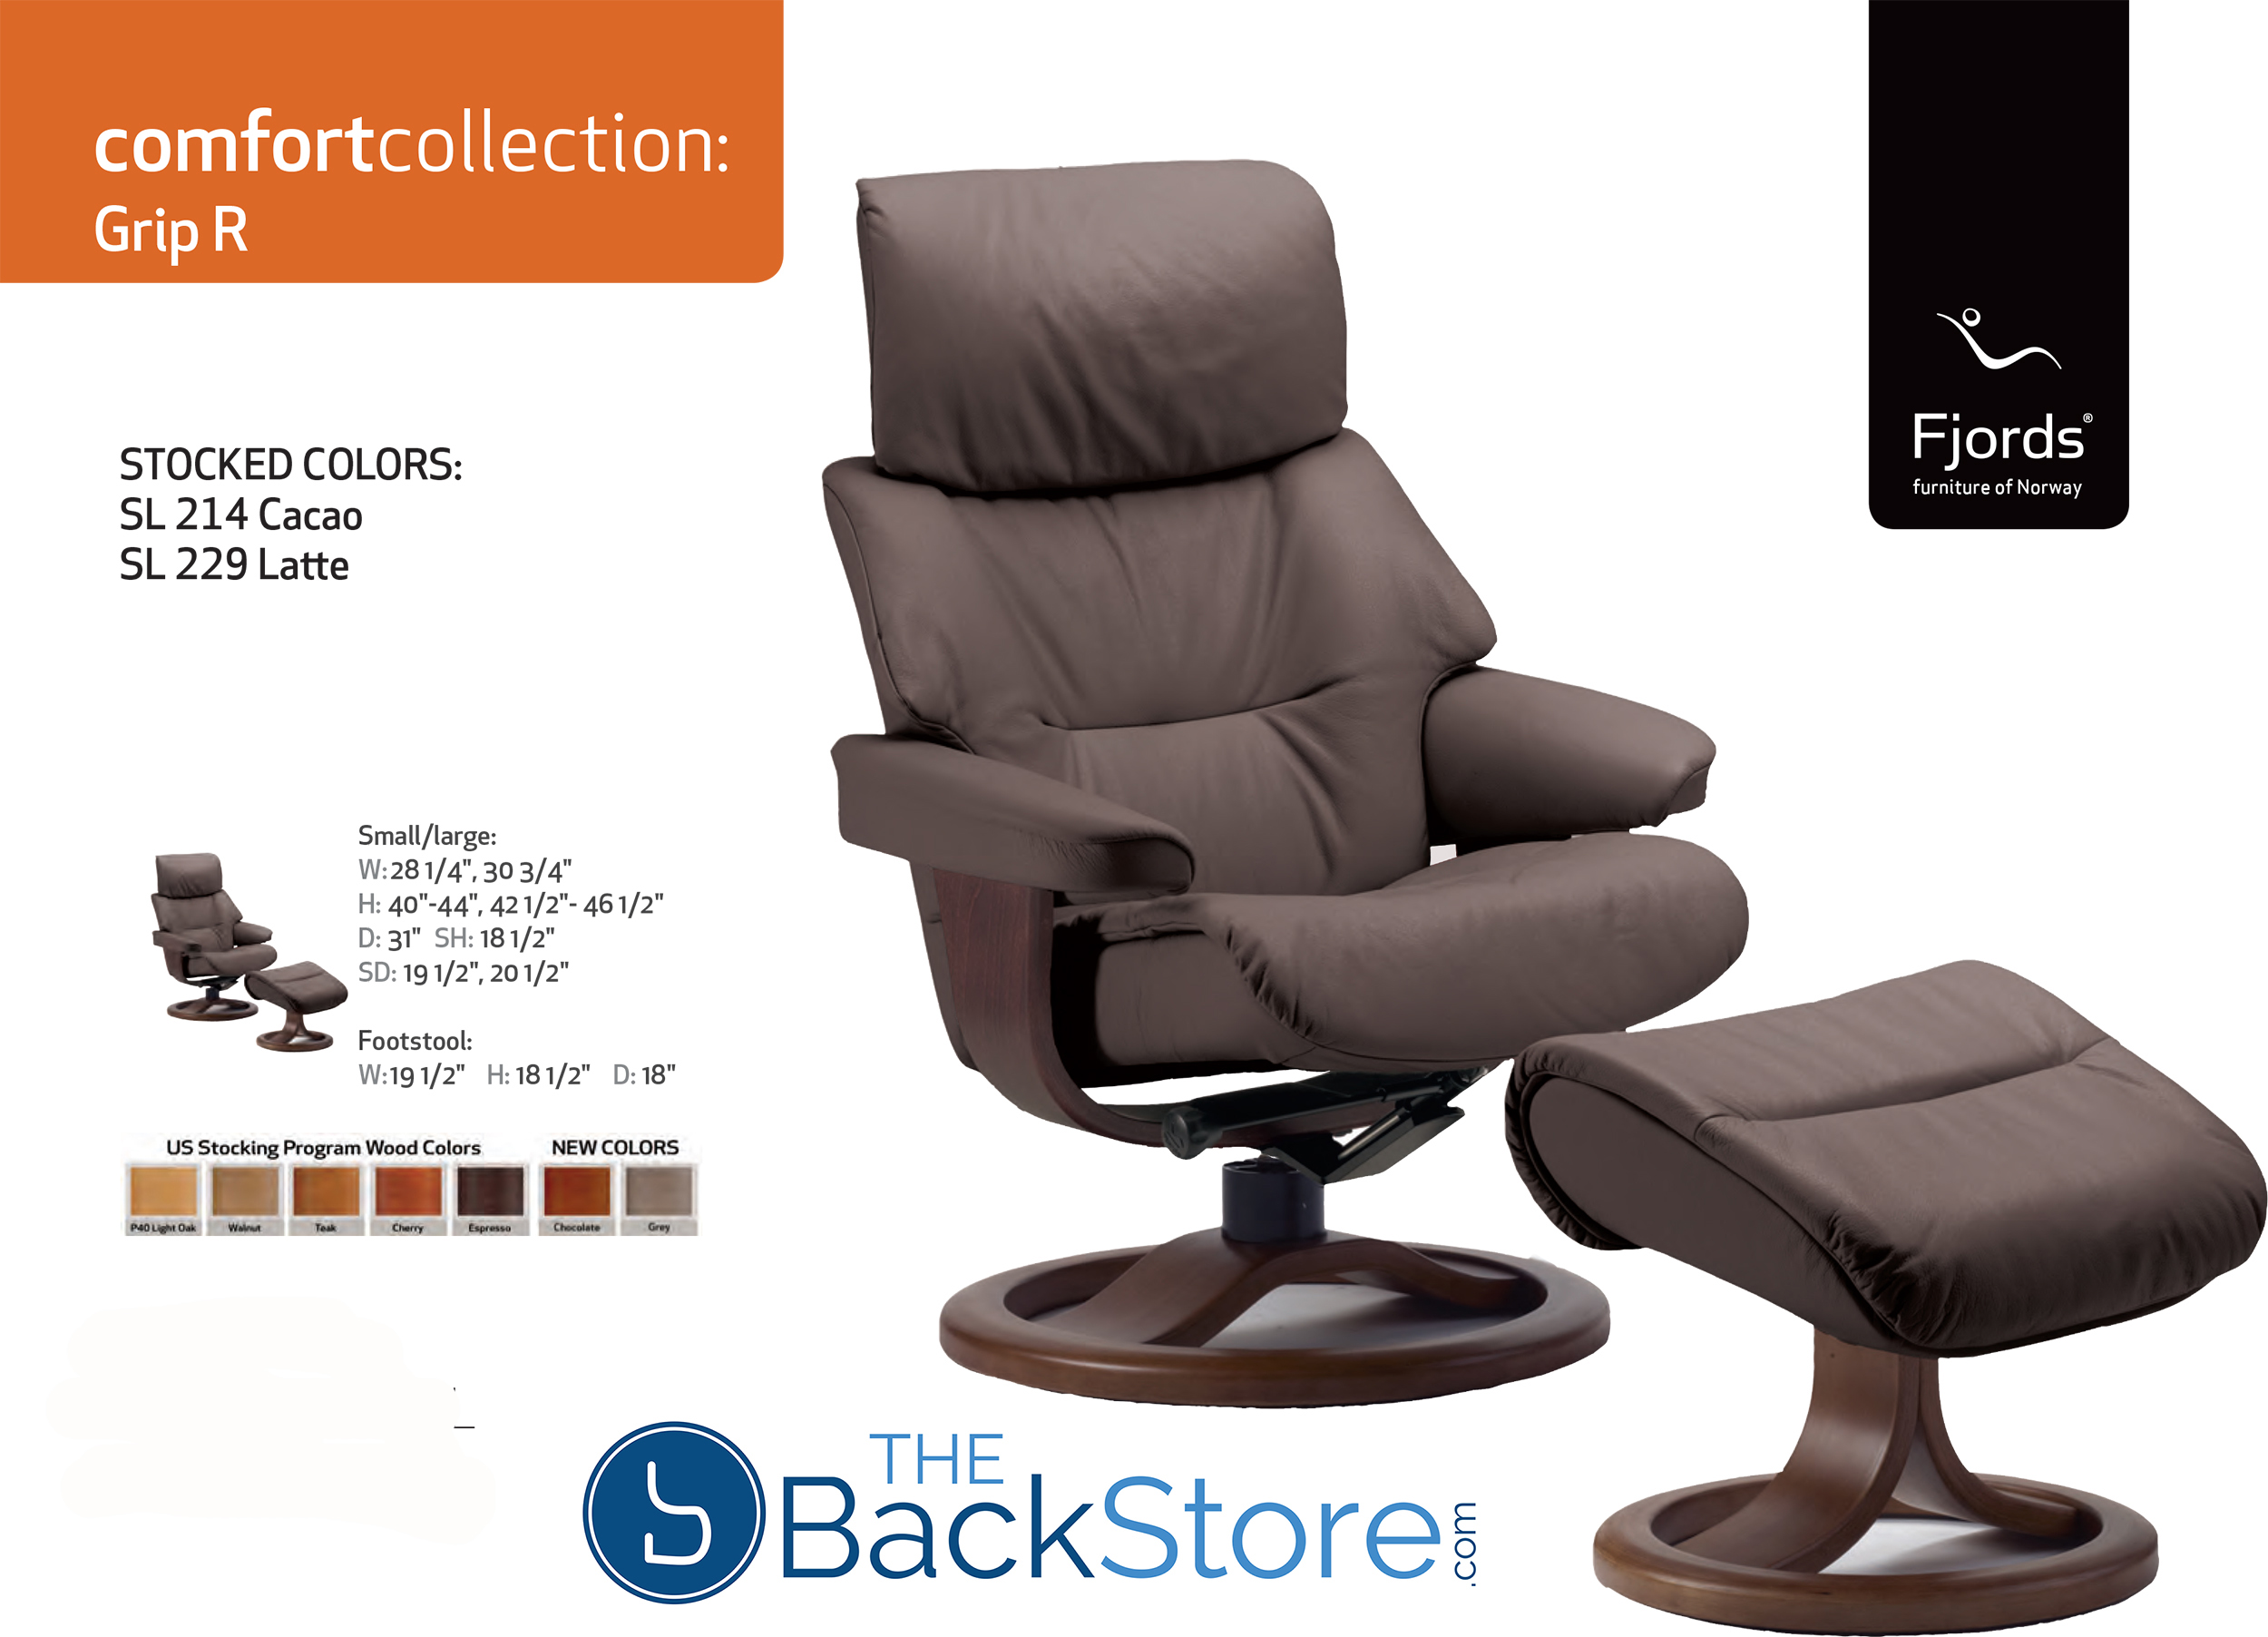 Fjords Grip Leather Recliner Chair and Ottoman  sc 1 st  Vitalityweb.com & Fjords Grip Ergonomic Leather Recliner Chair + Ottoman ... islam-shia.org